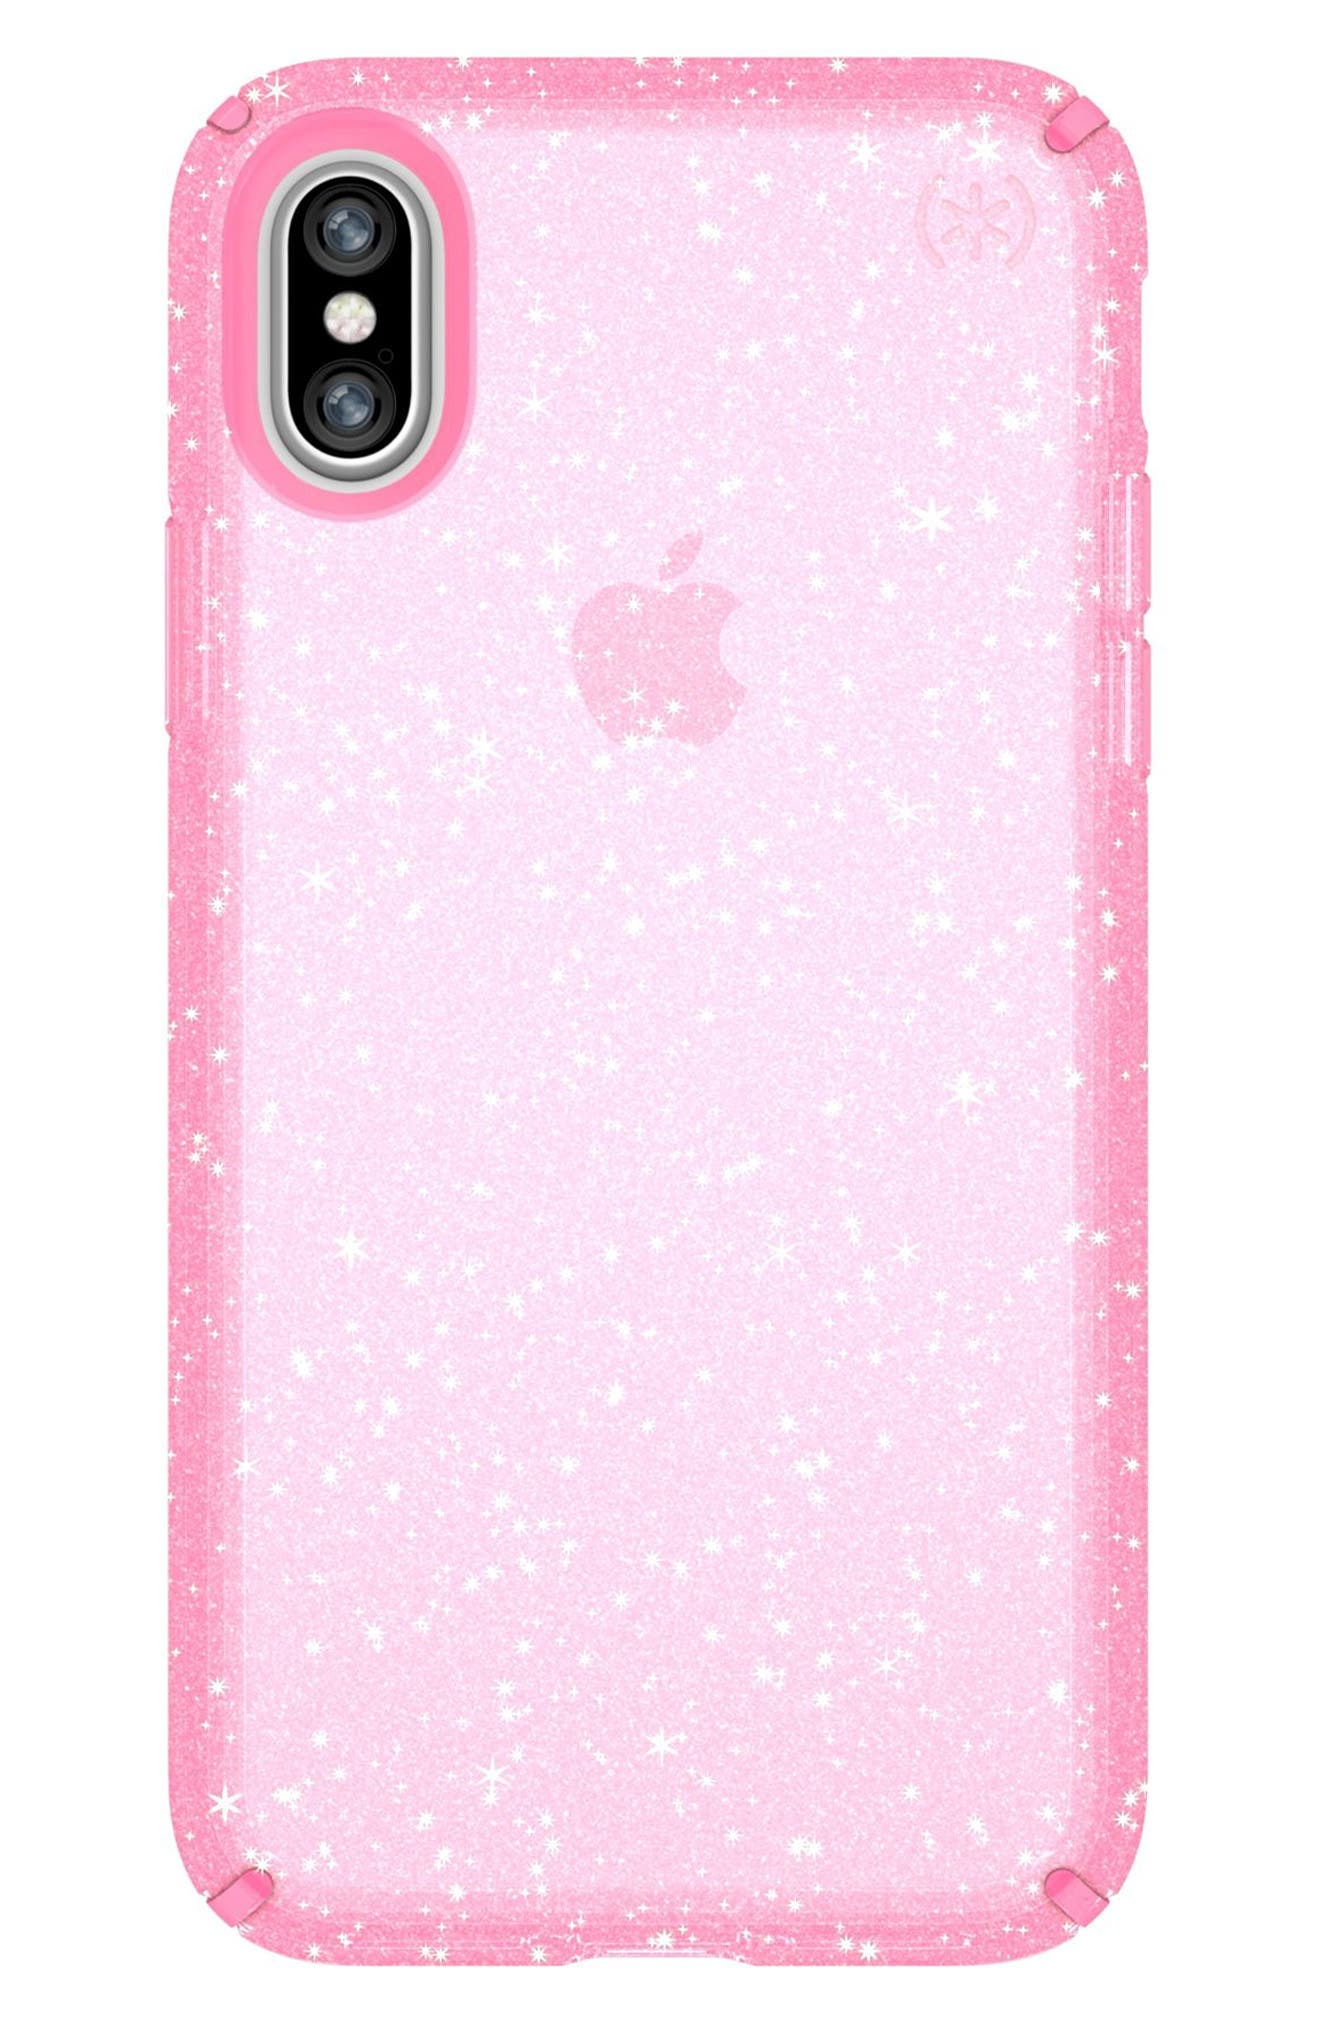 Transparent iPhone X & Xs Case,                         Main,                         color, BELLA PINK GOLD GLITTER/ PINK